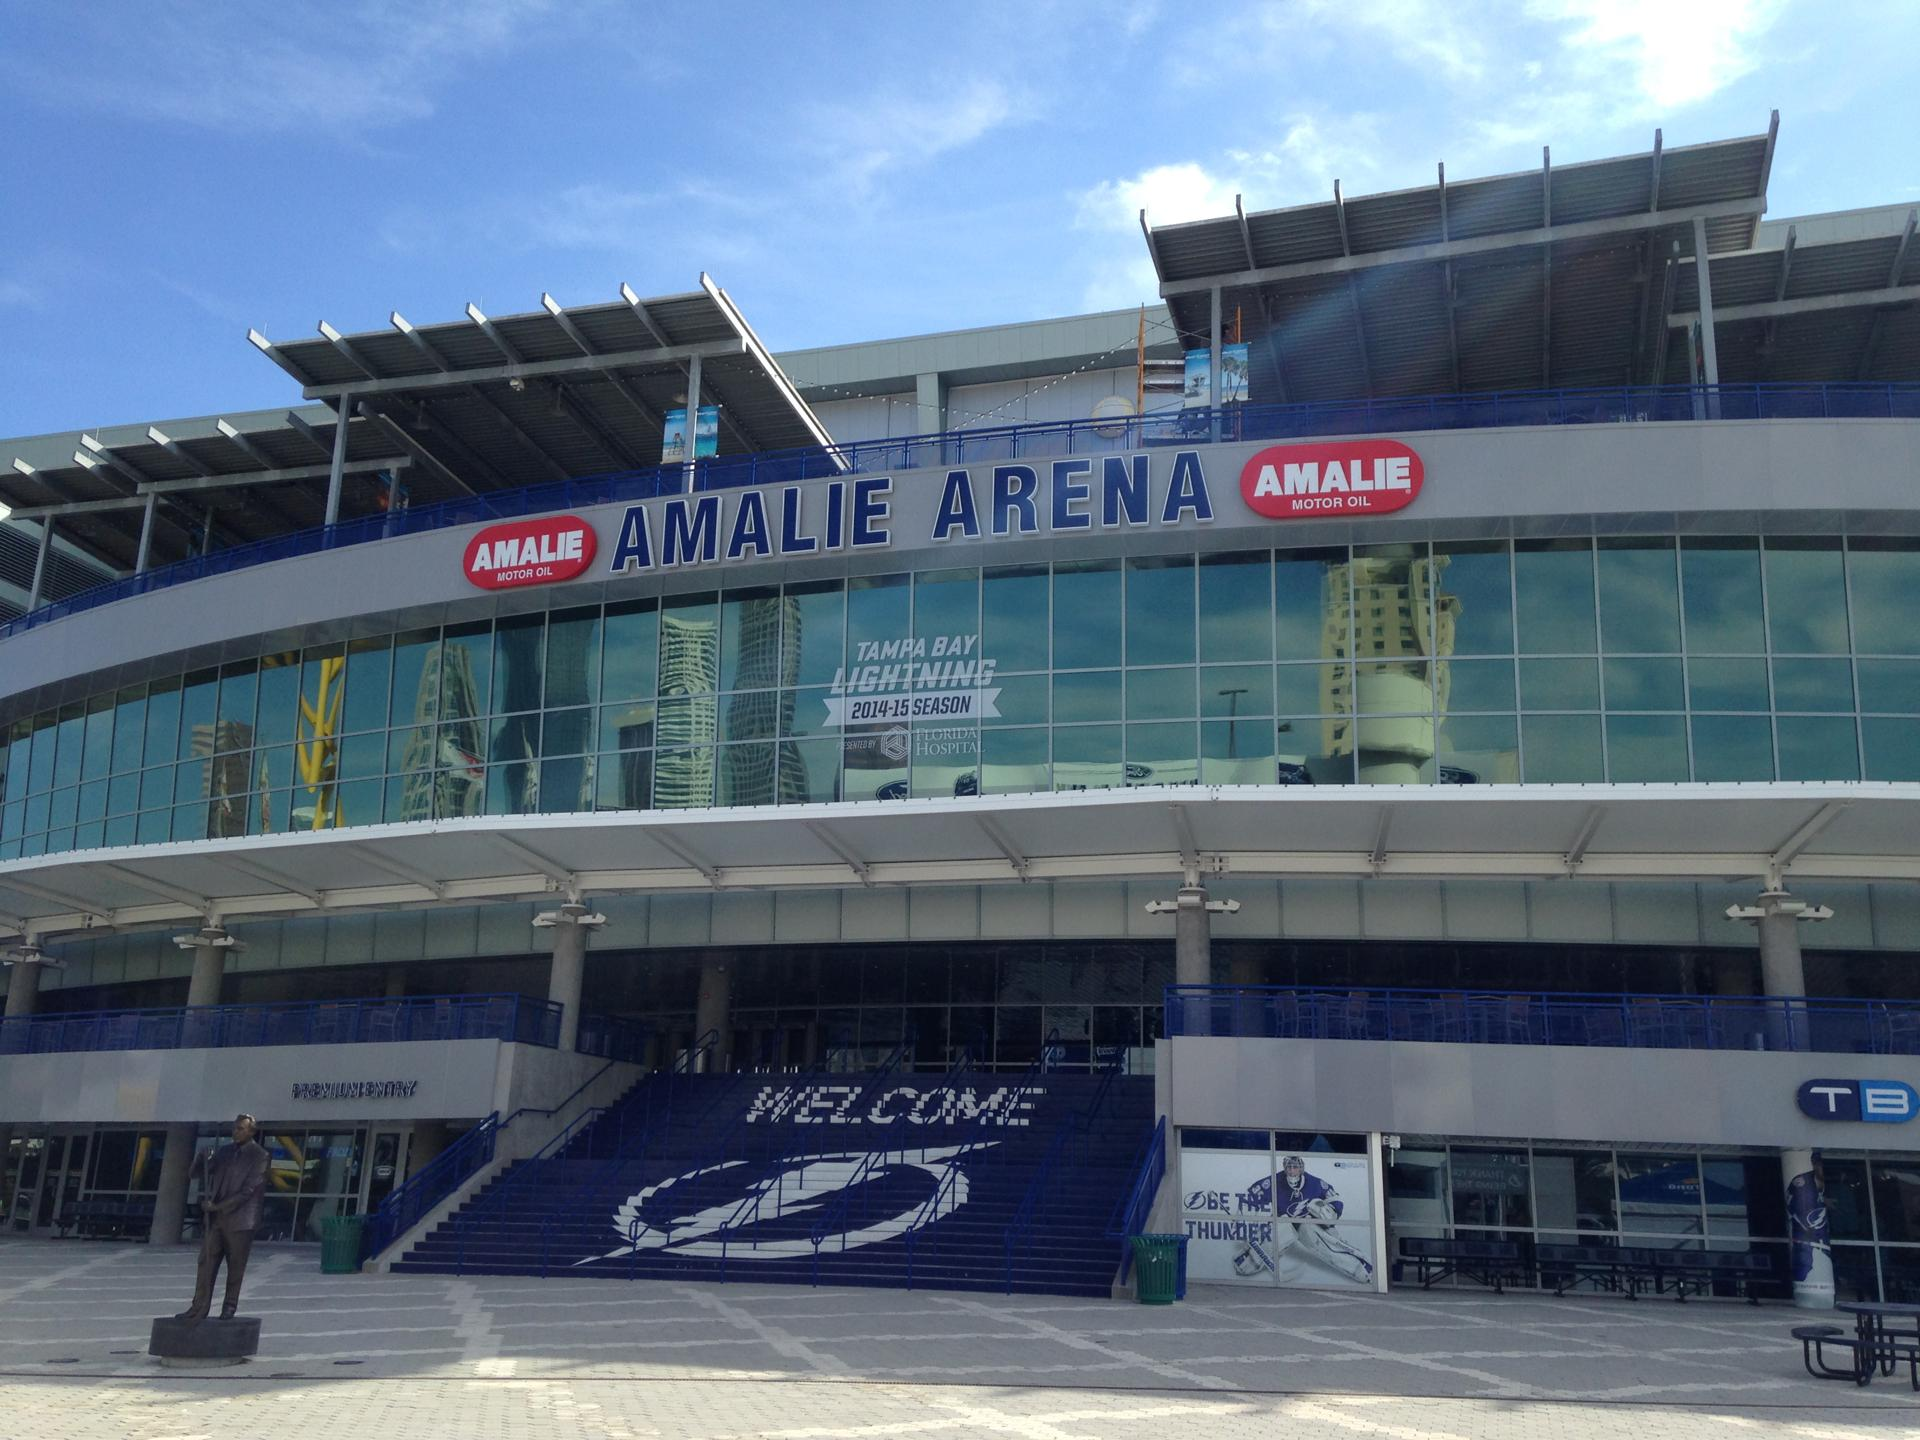 The arena opened in 1996 and is home to the NHL's Tampa Bay Lightning